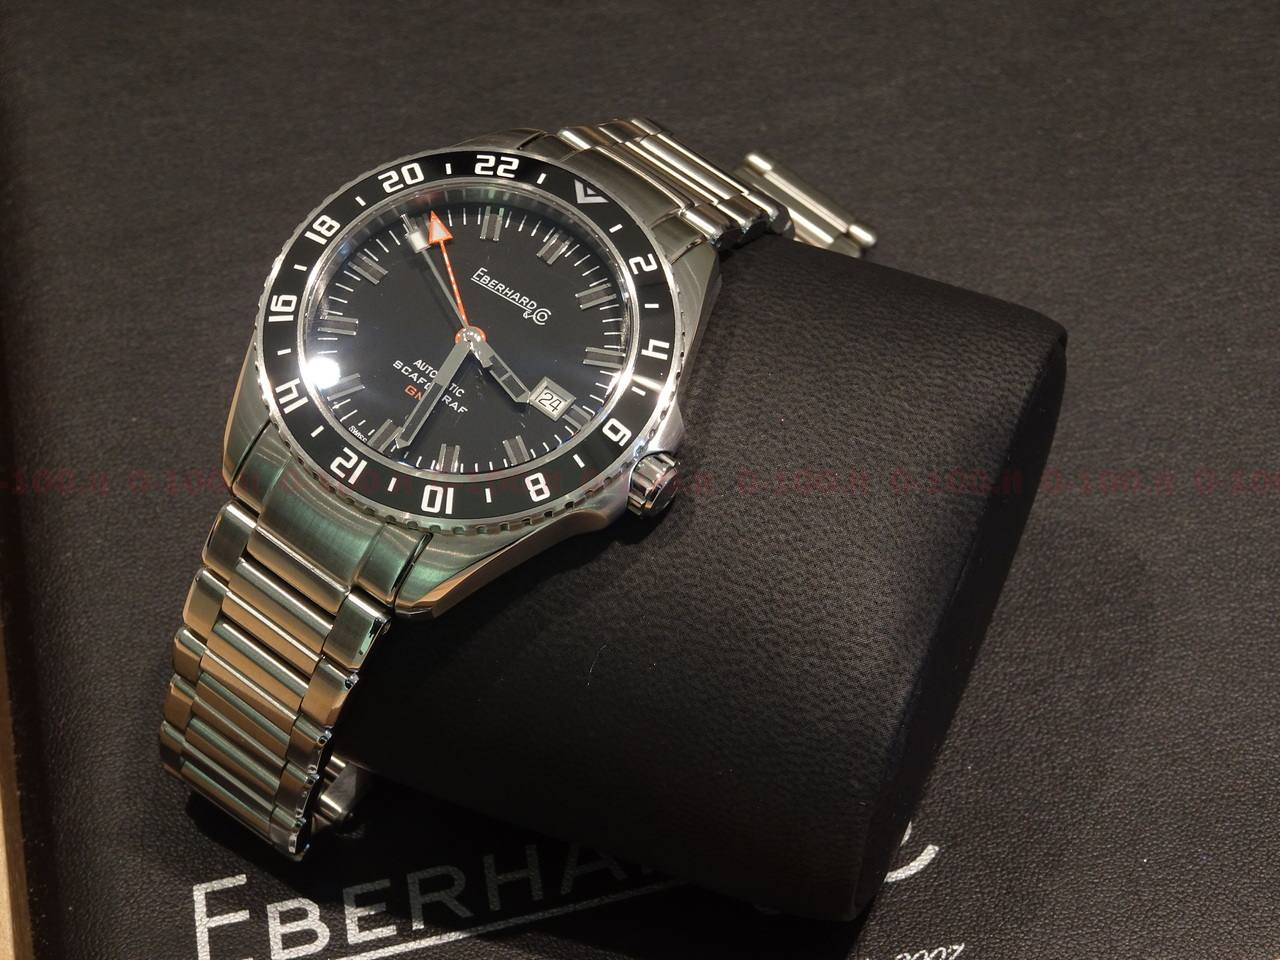 baselworld-2017-EBERHARD & CO SCAFOGRAF 300 GMT REF. 41038-prezzo-price_0-1005